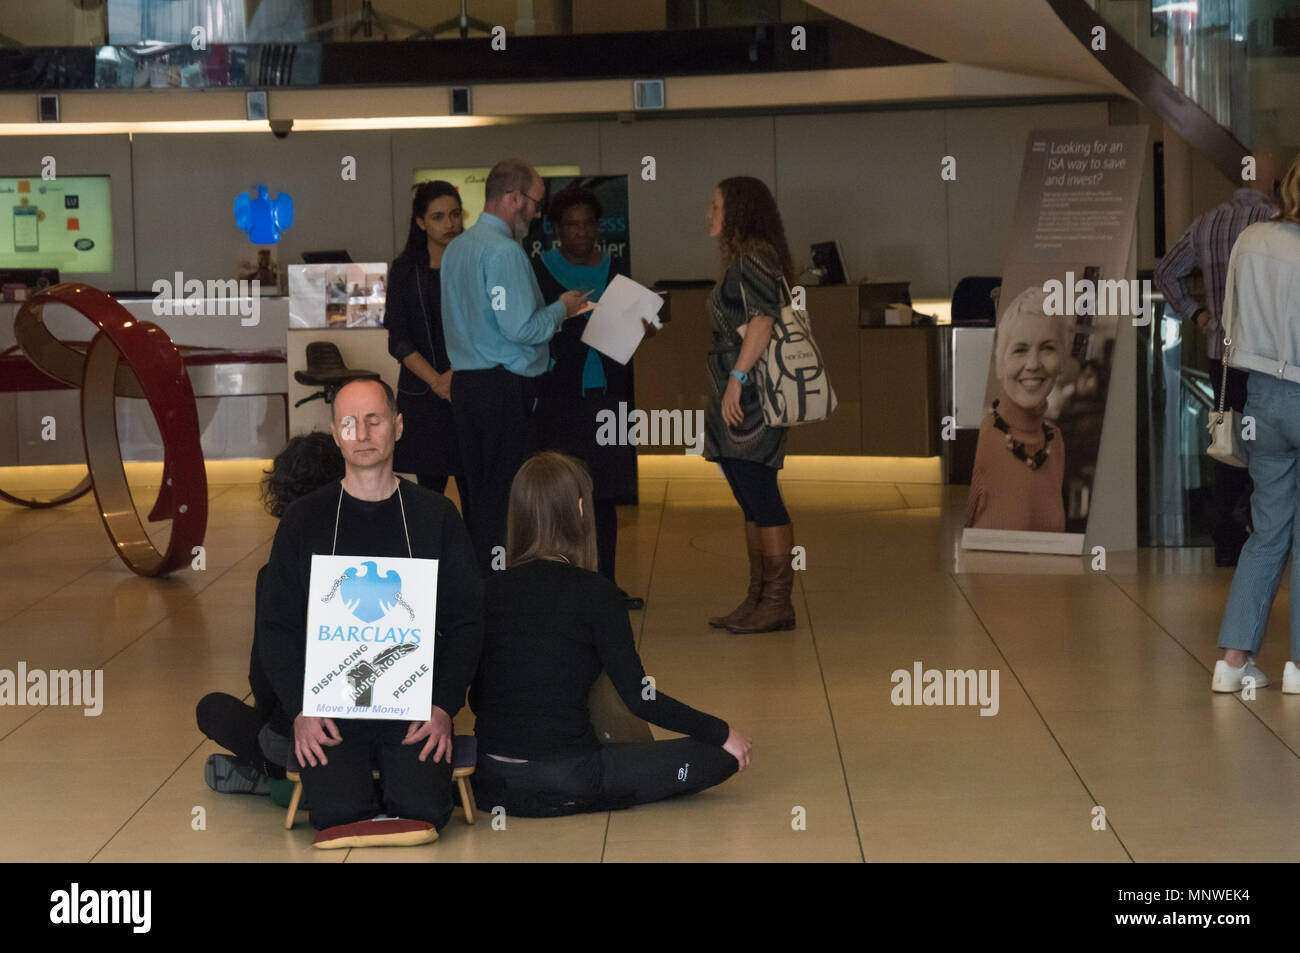 London, UK. 19th May 2018. Three members of the Dharma Action Network for Climate Engagement (DANCE) sit and meditate in the middle of the floor of the Piccadilly Circus branch of Barclays Bank to call on them to Stop Funding Climate Chaos. Credit: Peter Marshall/Alamy Live News - Stock Image